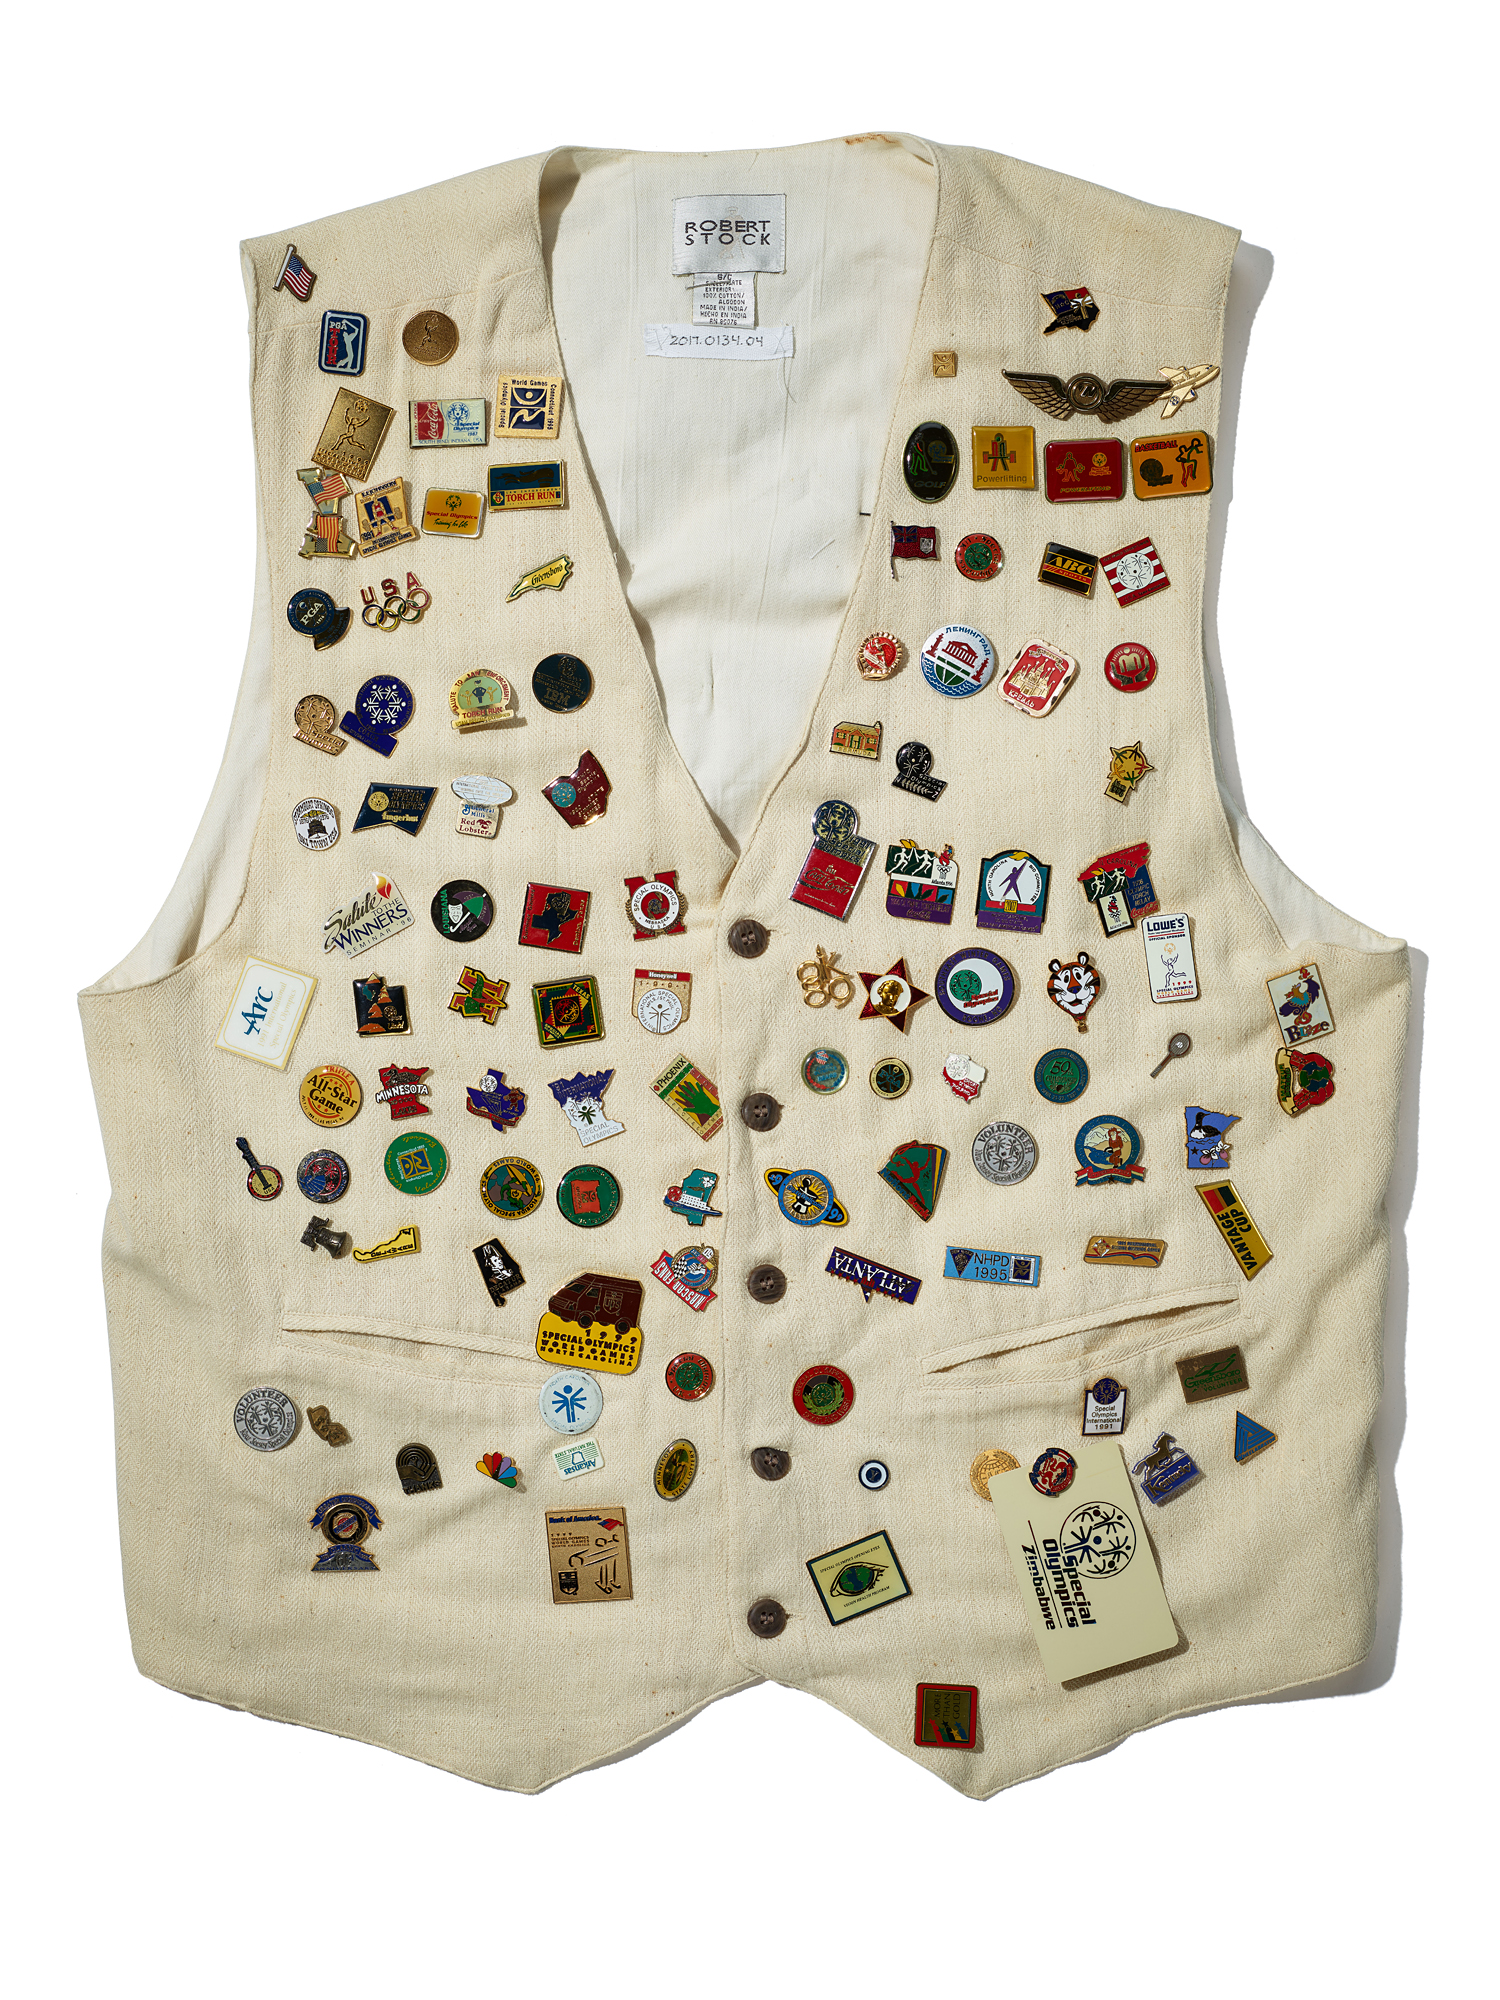 Photo of white vest covered in small, commemorative souvenir pins and buttons. They seem to have different states and countries on them with colorful symbols and text. Probably more than 30.